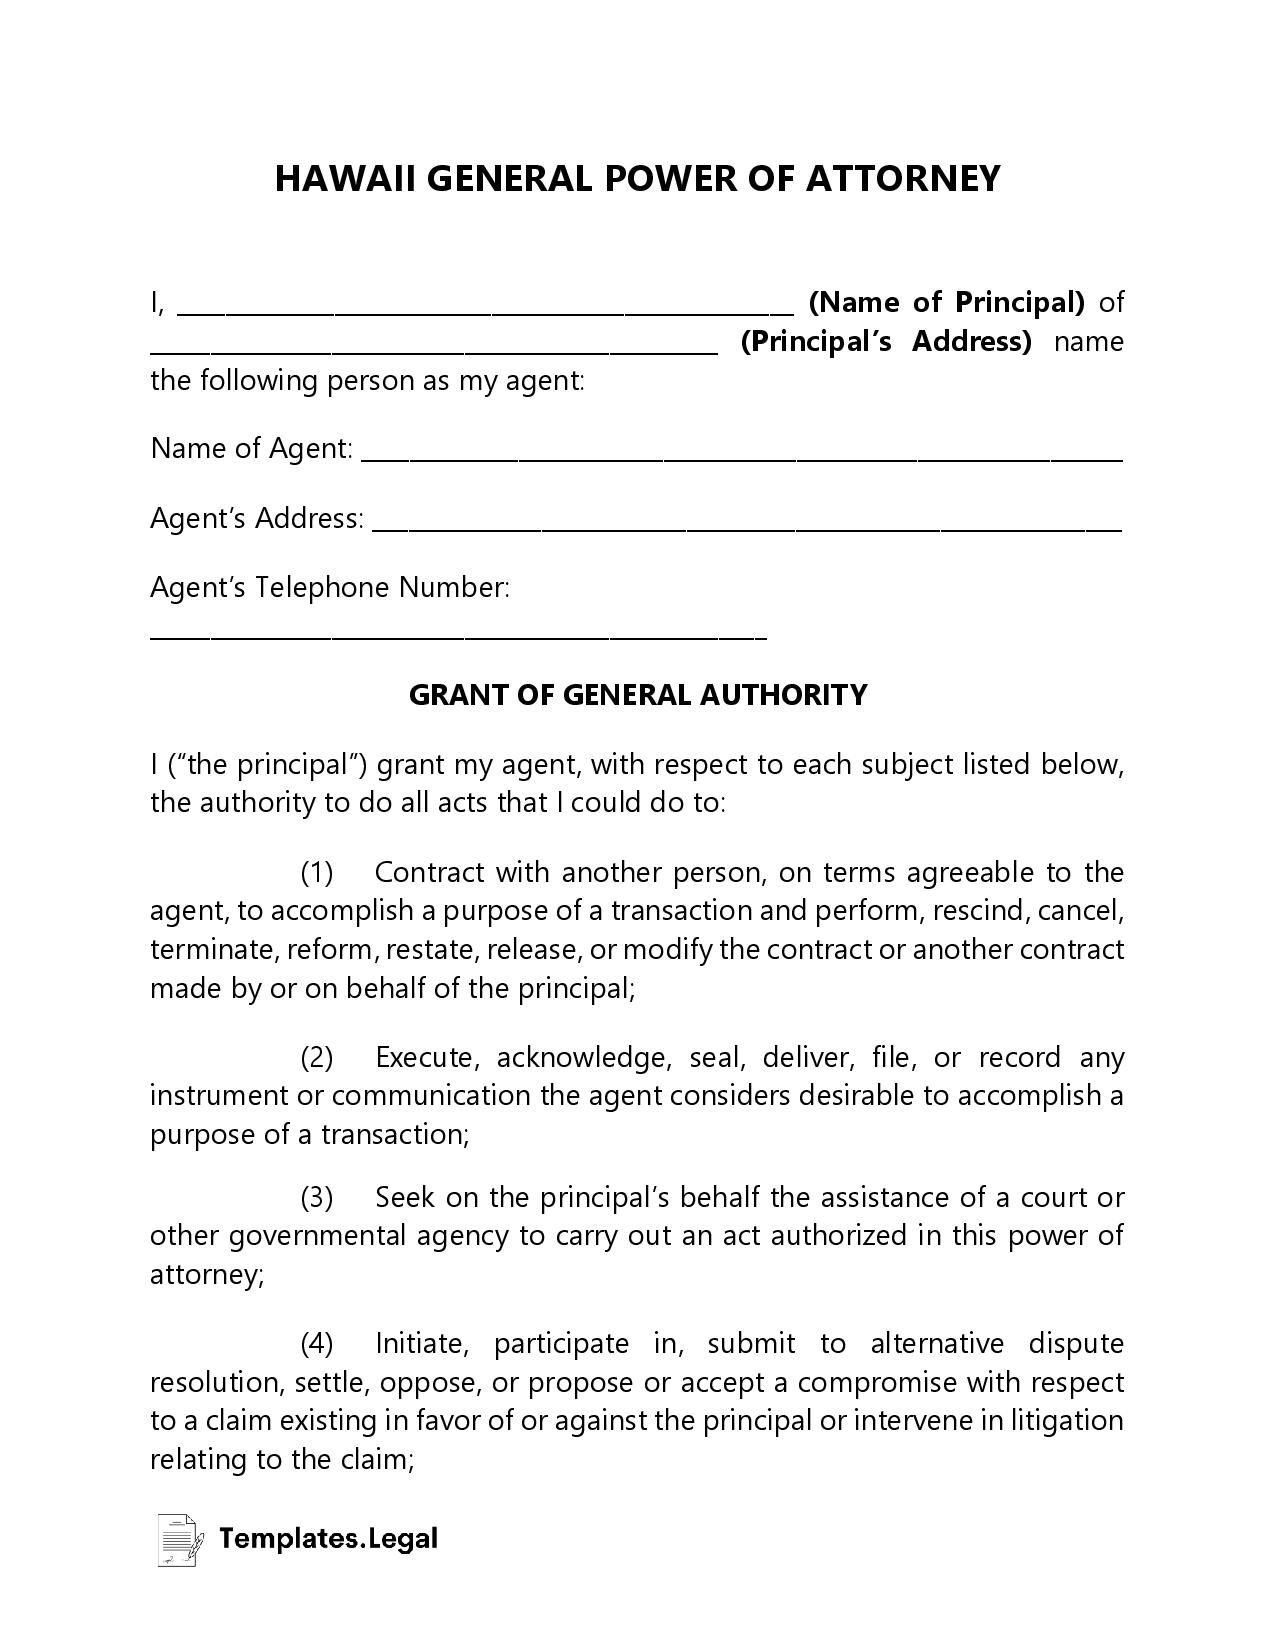 Hawaii General Power of Attorney - Templates.Legal